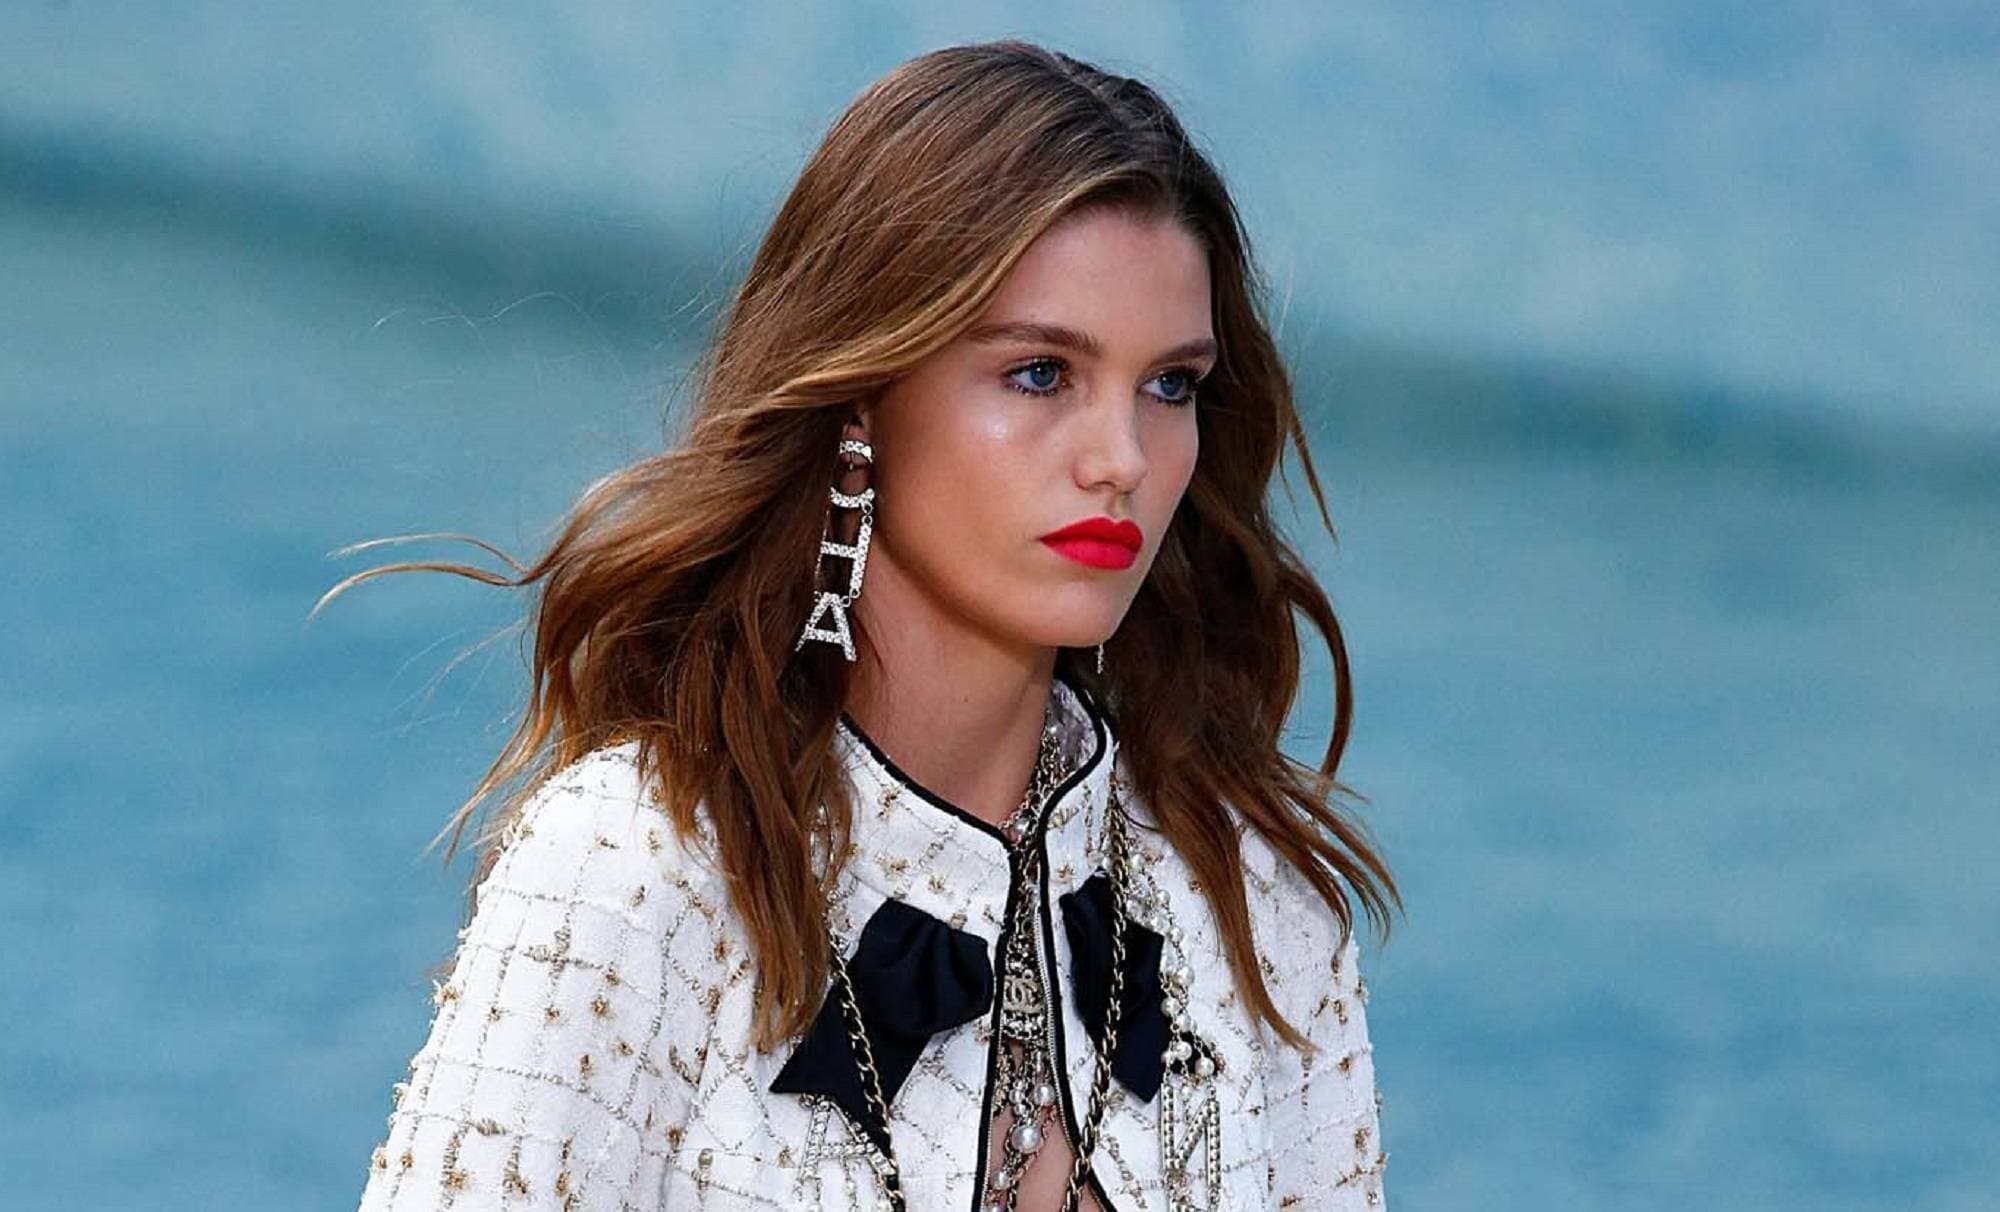 Dark brown hair color: Closeup shot of a woman with long chestnut brown hair wearing a white printed jacket walking in a fashion show